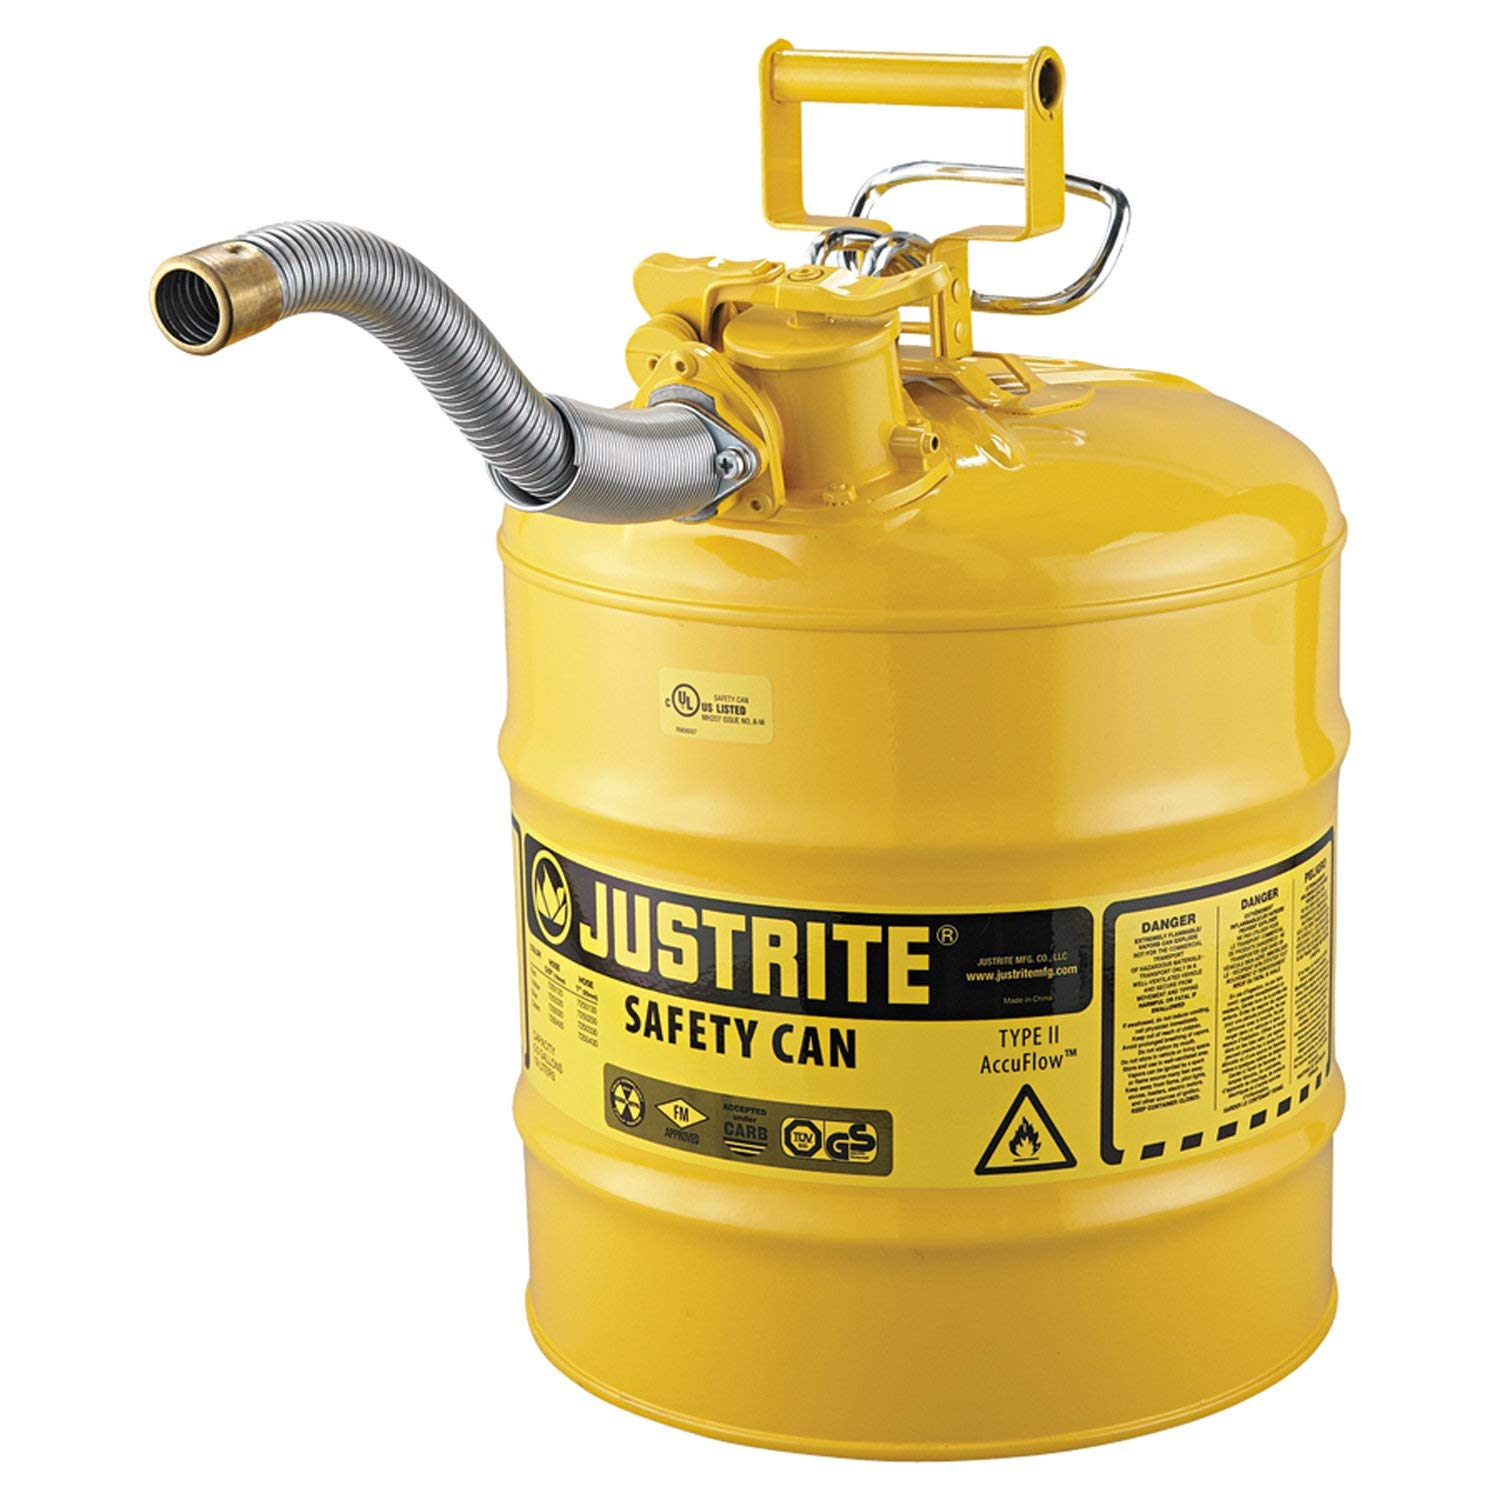 7250230 AccuFlow 5 Gallon, 11.75 in OD x 17.50 in H Galvanized Steel Type II Yellow Safety Can With 1in Flexible Spout,